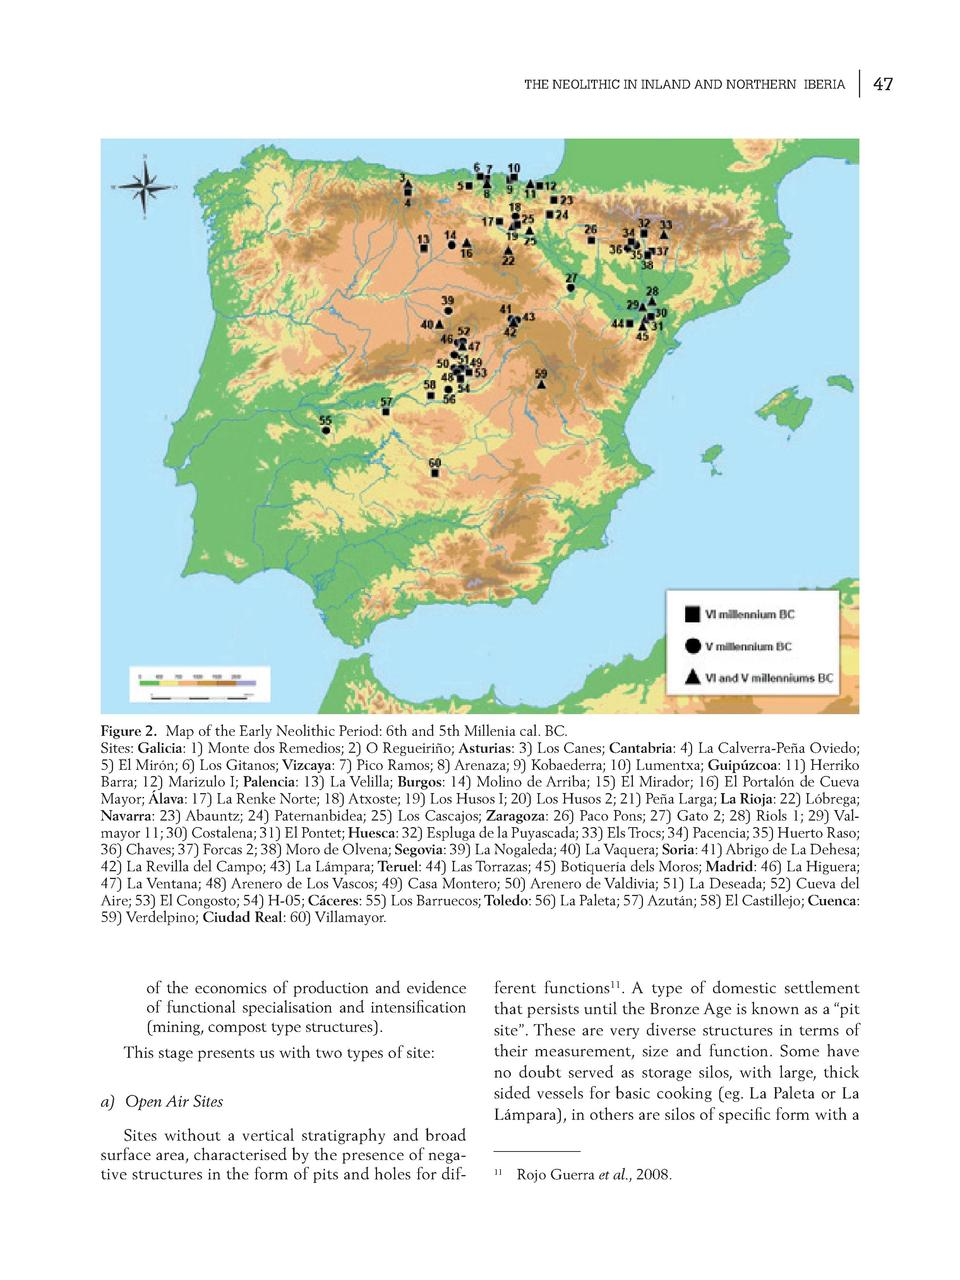 THE NEOLITHIC IN INLAND AND NORTHERN IBERIA  Figure 2. Map of the Early Neolithic Period  6th and 5th Millenia cal. BC. Si...